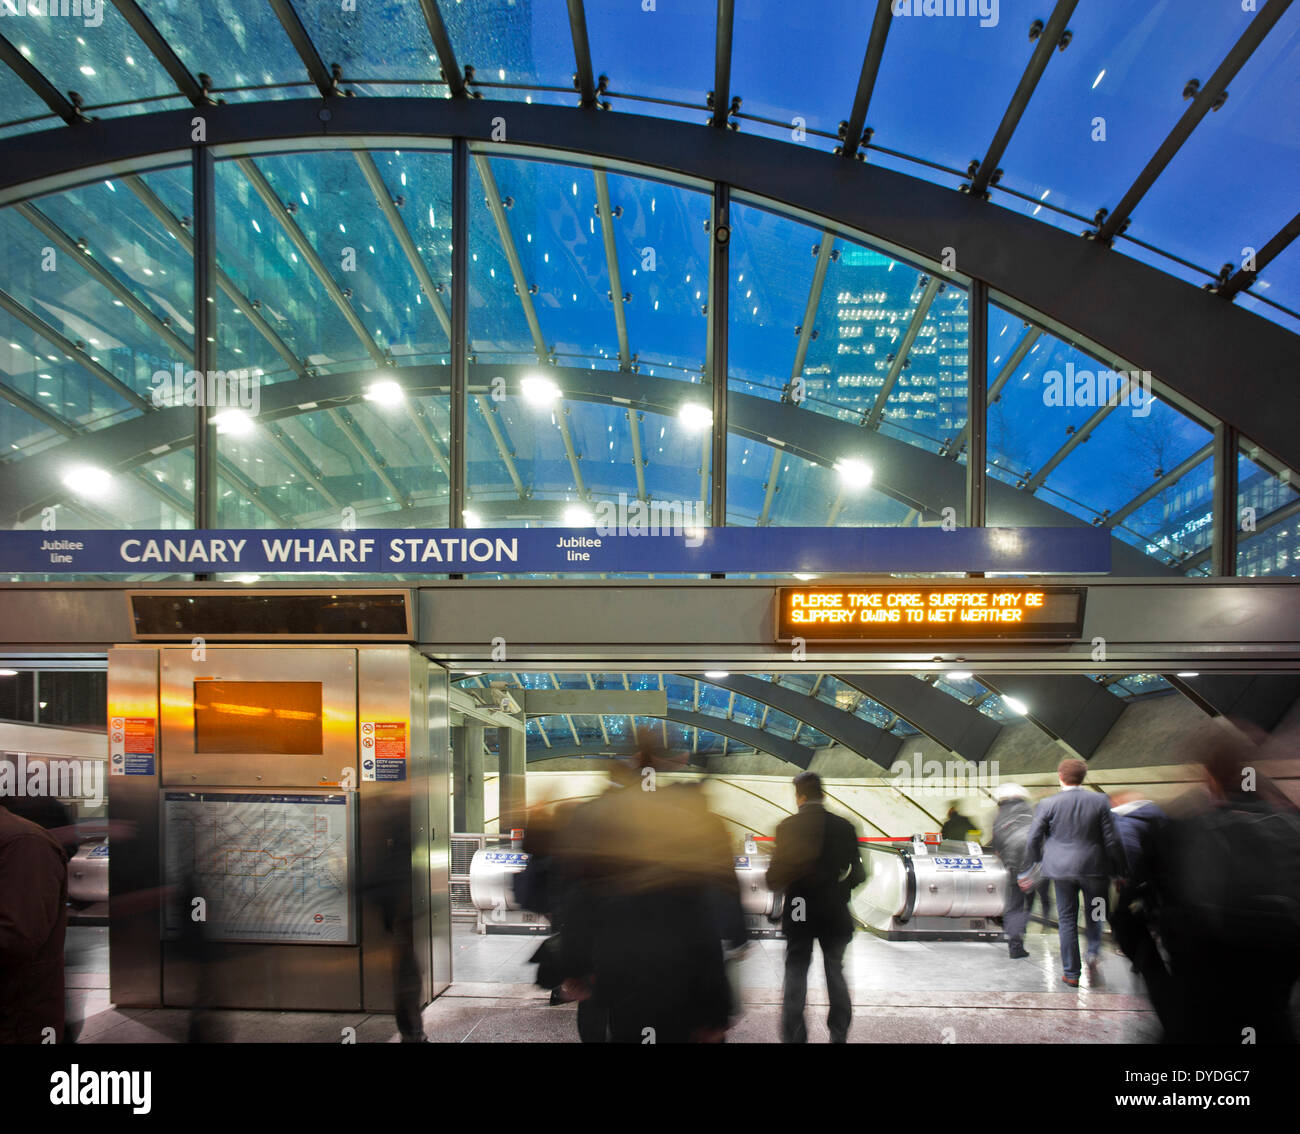 Interior of Canary Wharf tube station. - Stock Image